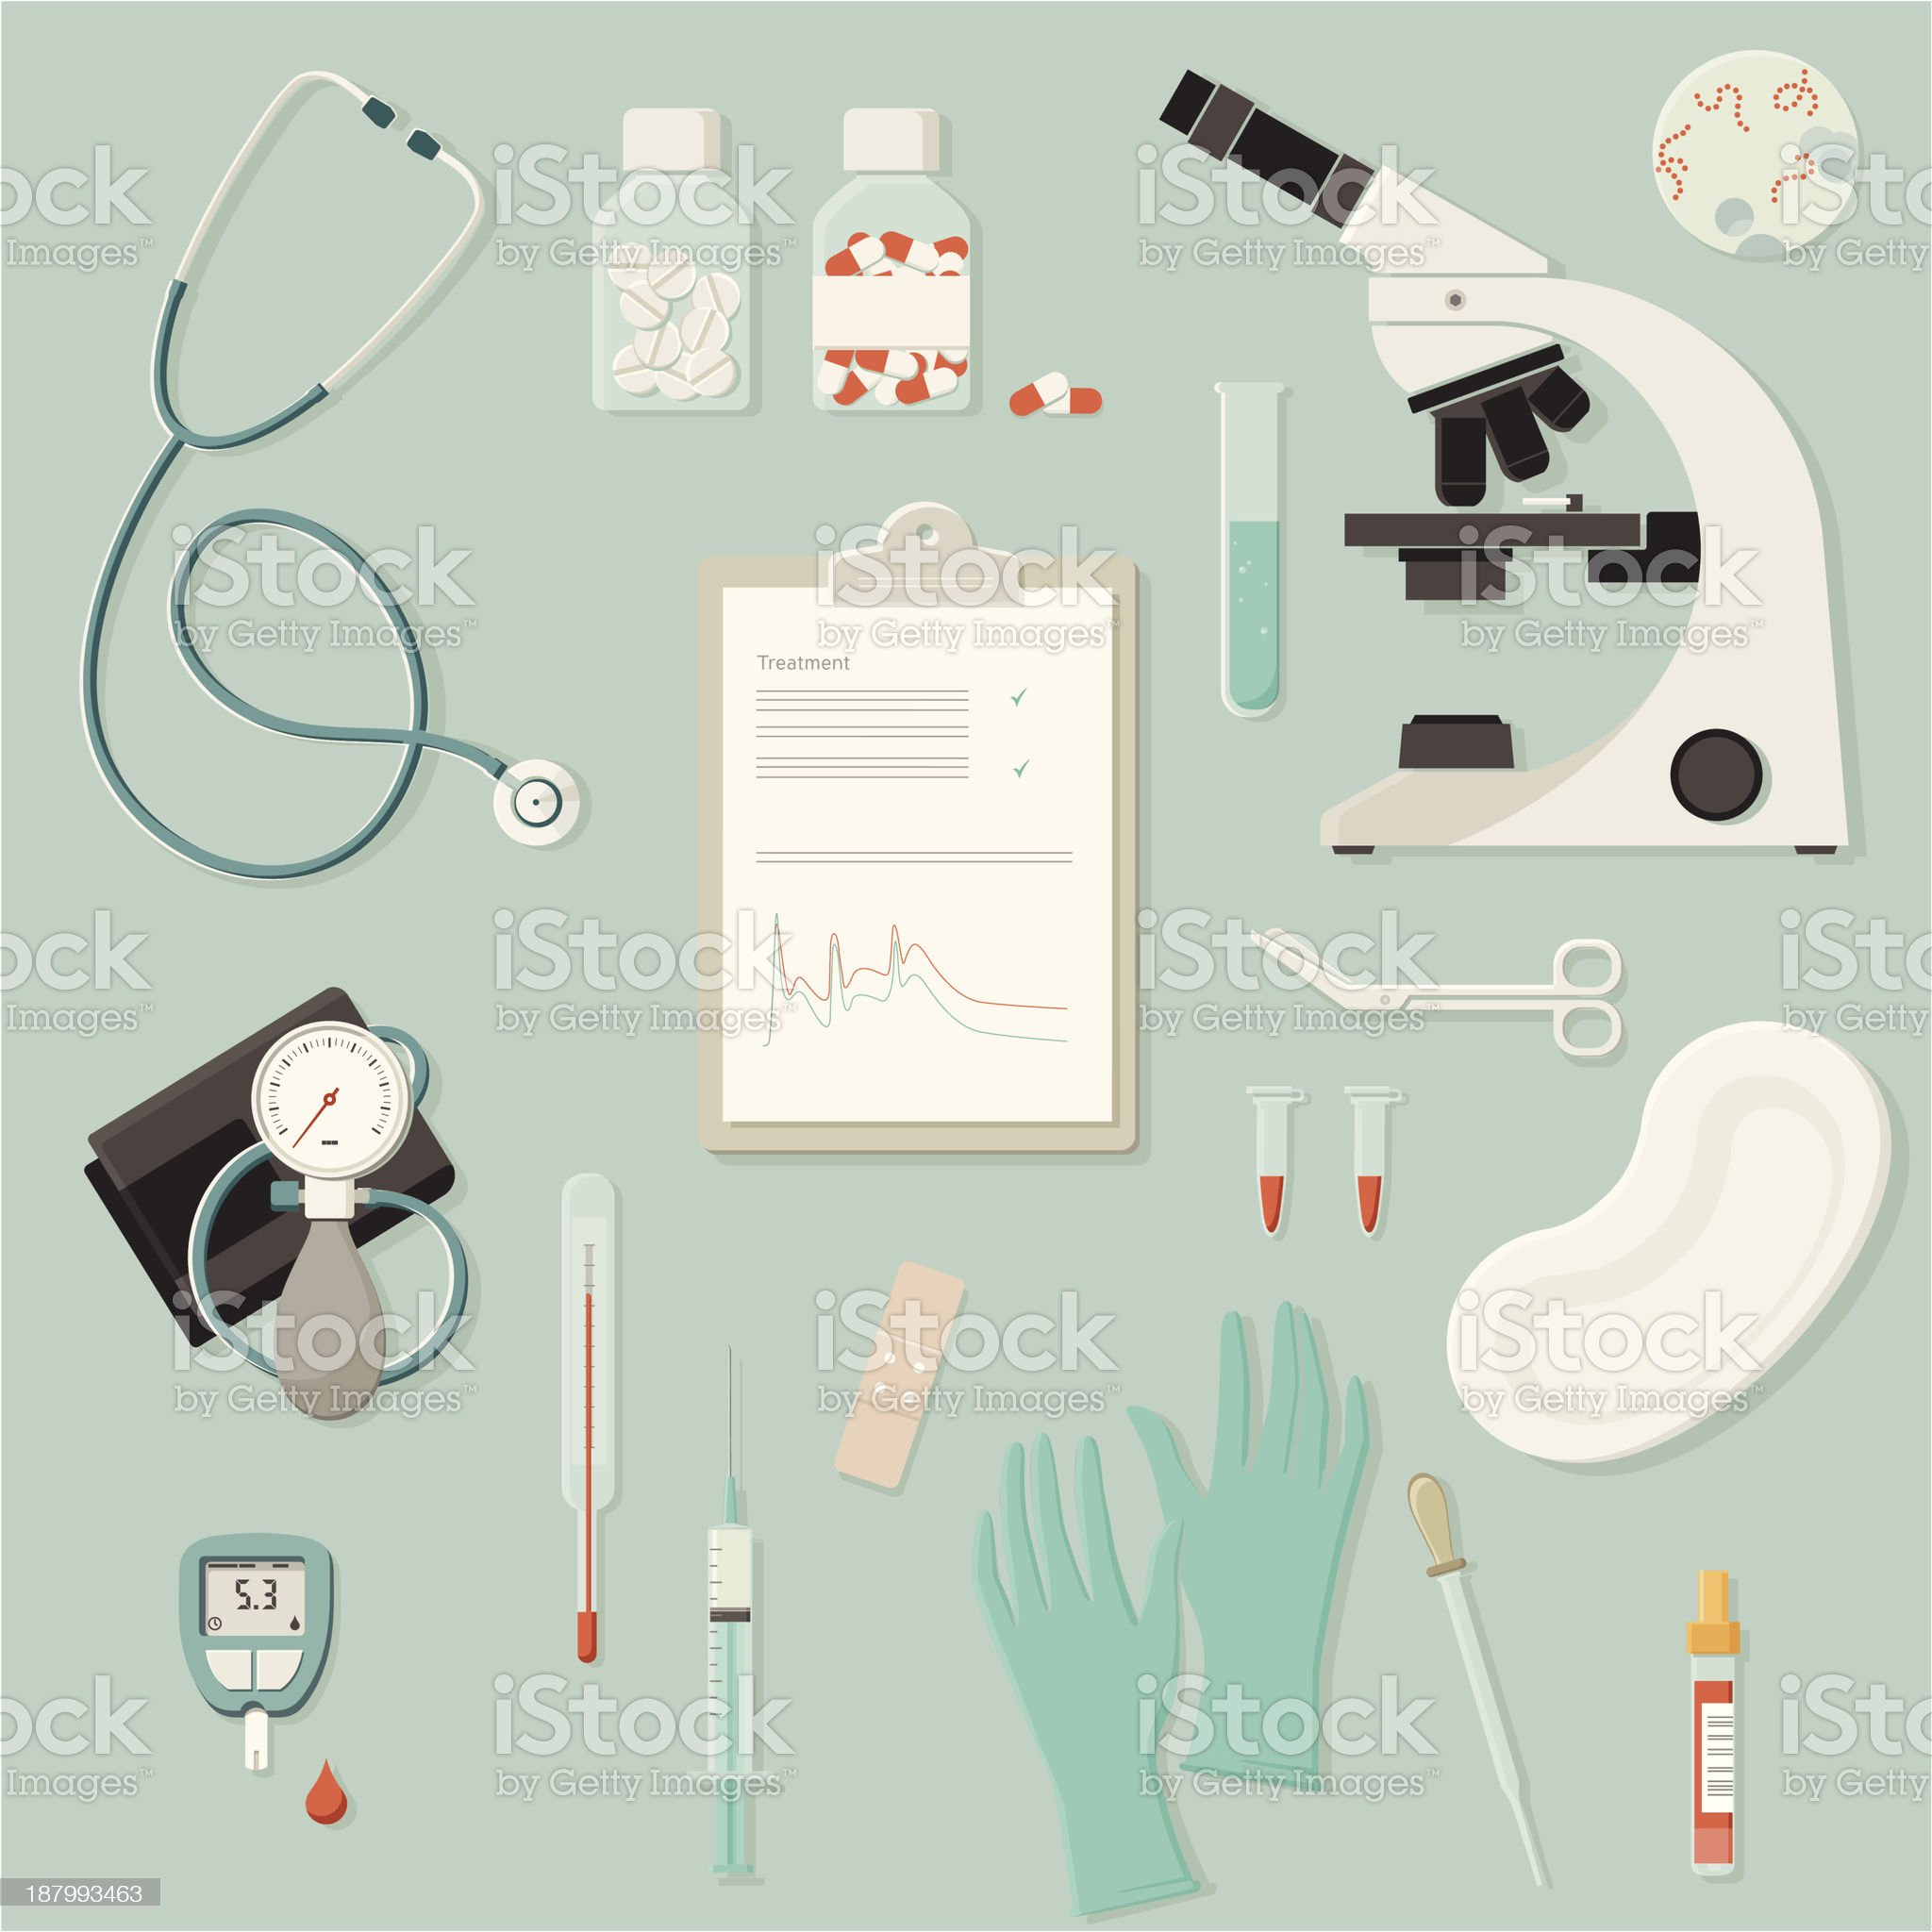 Medical equipment and instruments royalty-free stock vector art